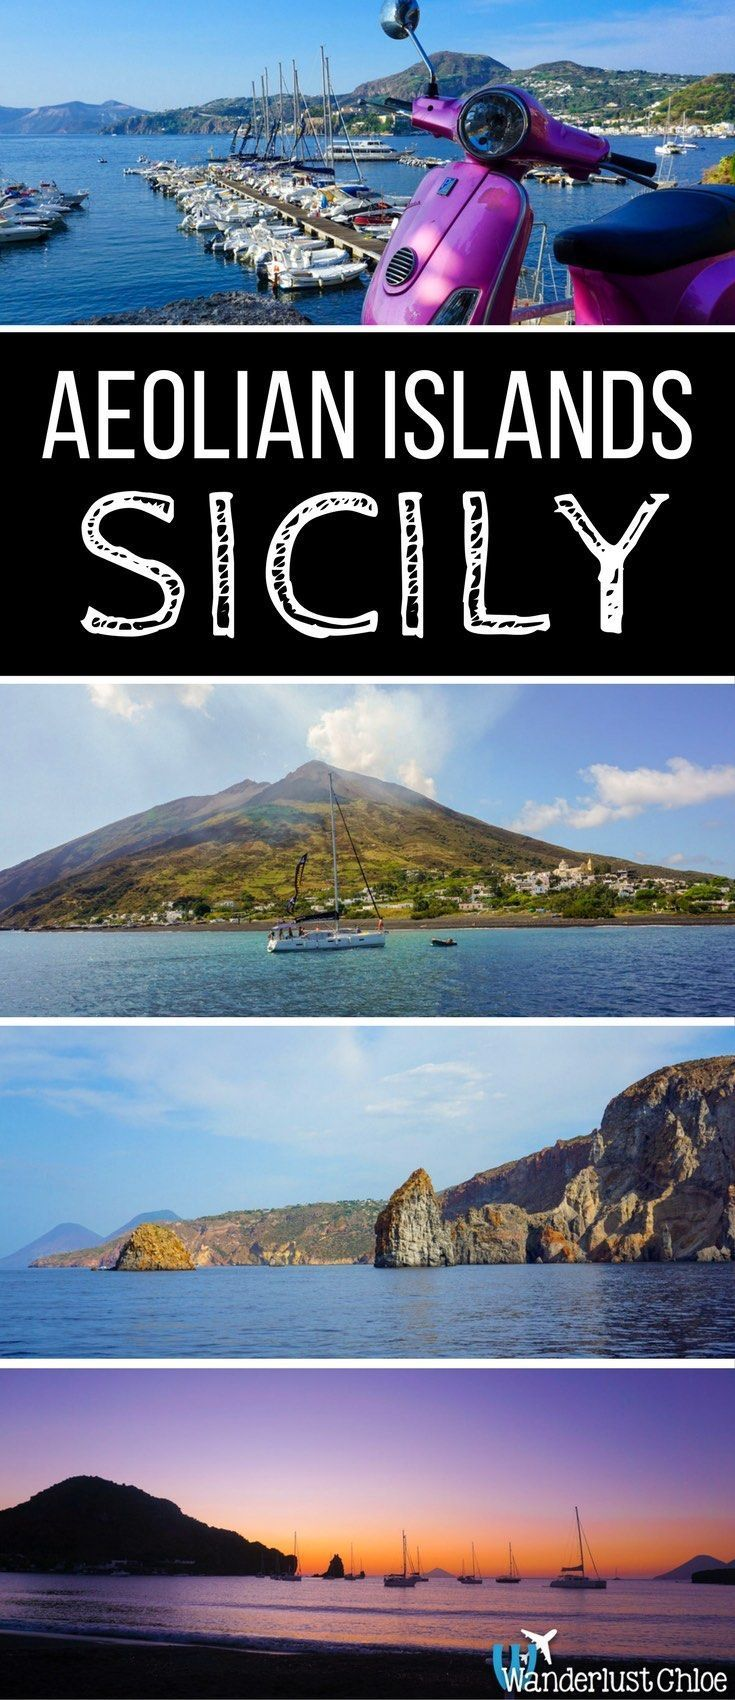 Sailing Around Sicily. Sailing around Sicily�s Aeolian Islands, hiking volcanoes, bathing in mud baths, and chilled out yacht life – here�s the lowdown on MedSailors� brand new route in Sicily, Italy. #sailing #sicily #sicilia #aeolianislands